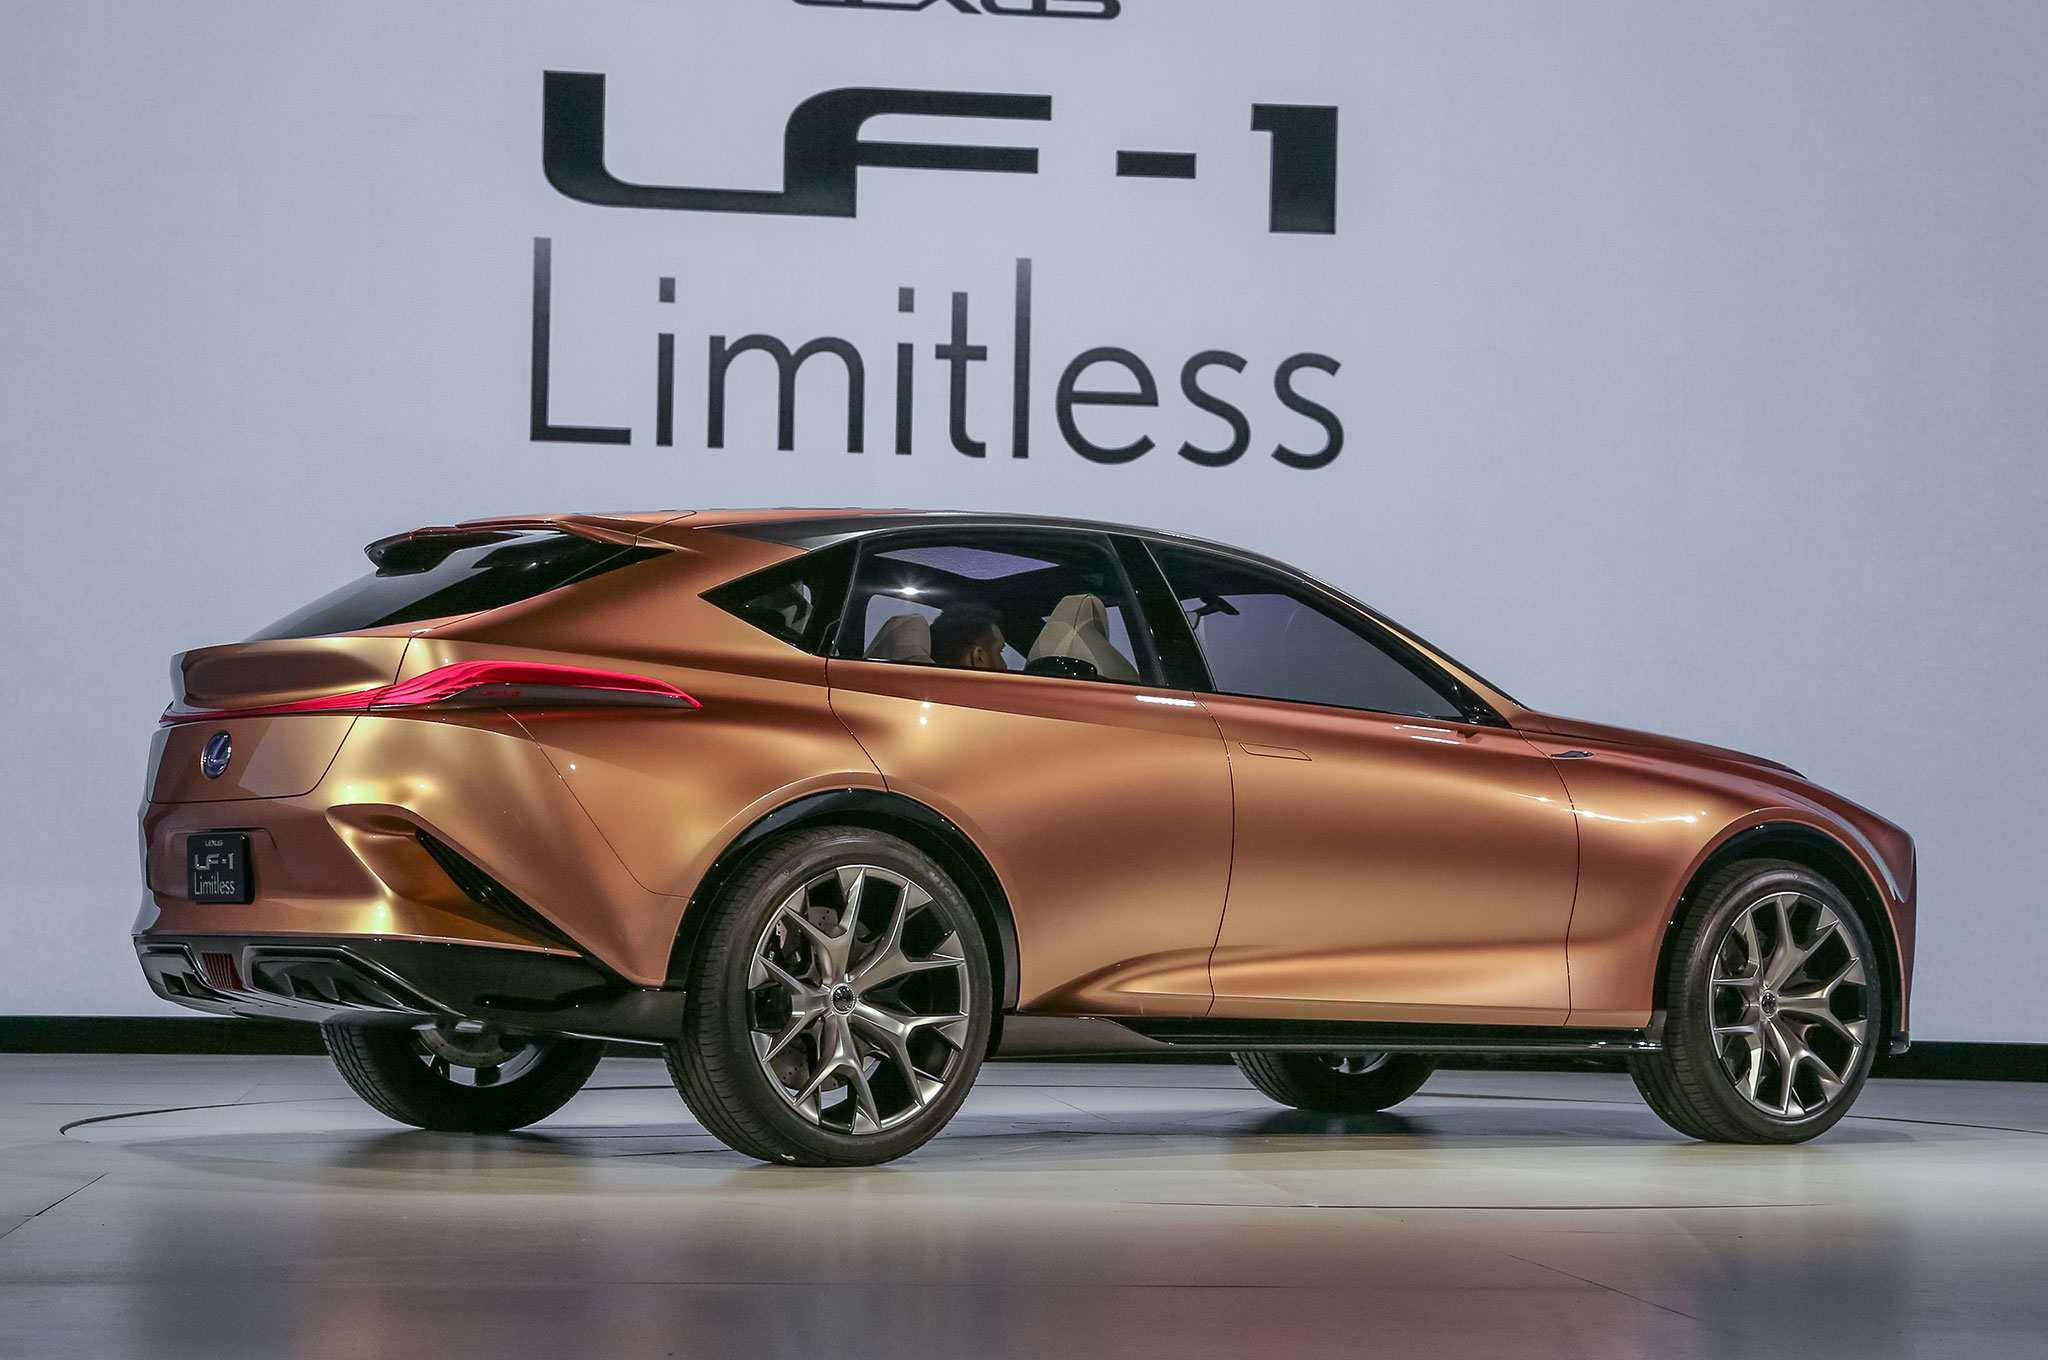 40 New Lexus Lf 1 Limitless 2020 Price and Review by Lexus Lf 1 Limitless 2020